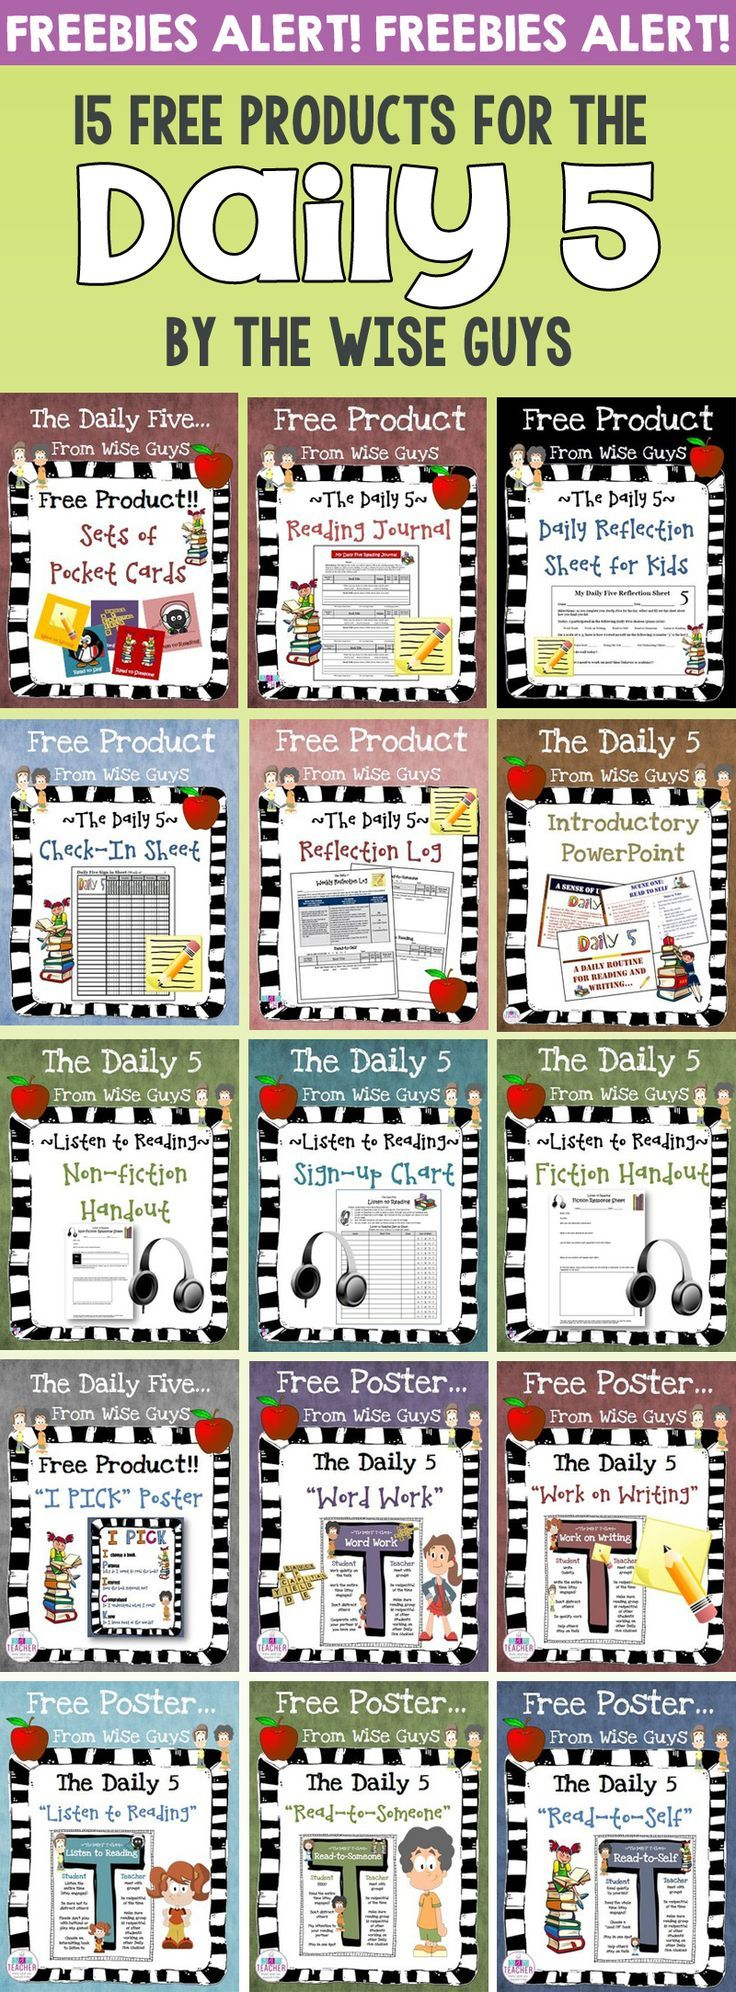 We began the Daily 5 this past school year and found it to be an amazing way to help our students become proficient readers and writers! Enjoy these freebies!: